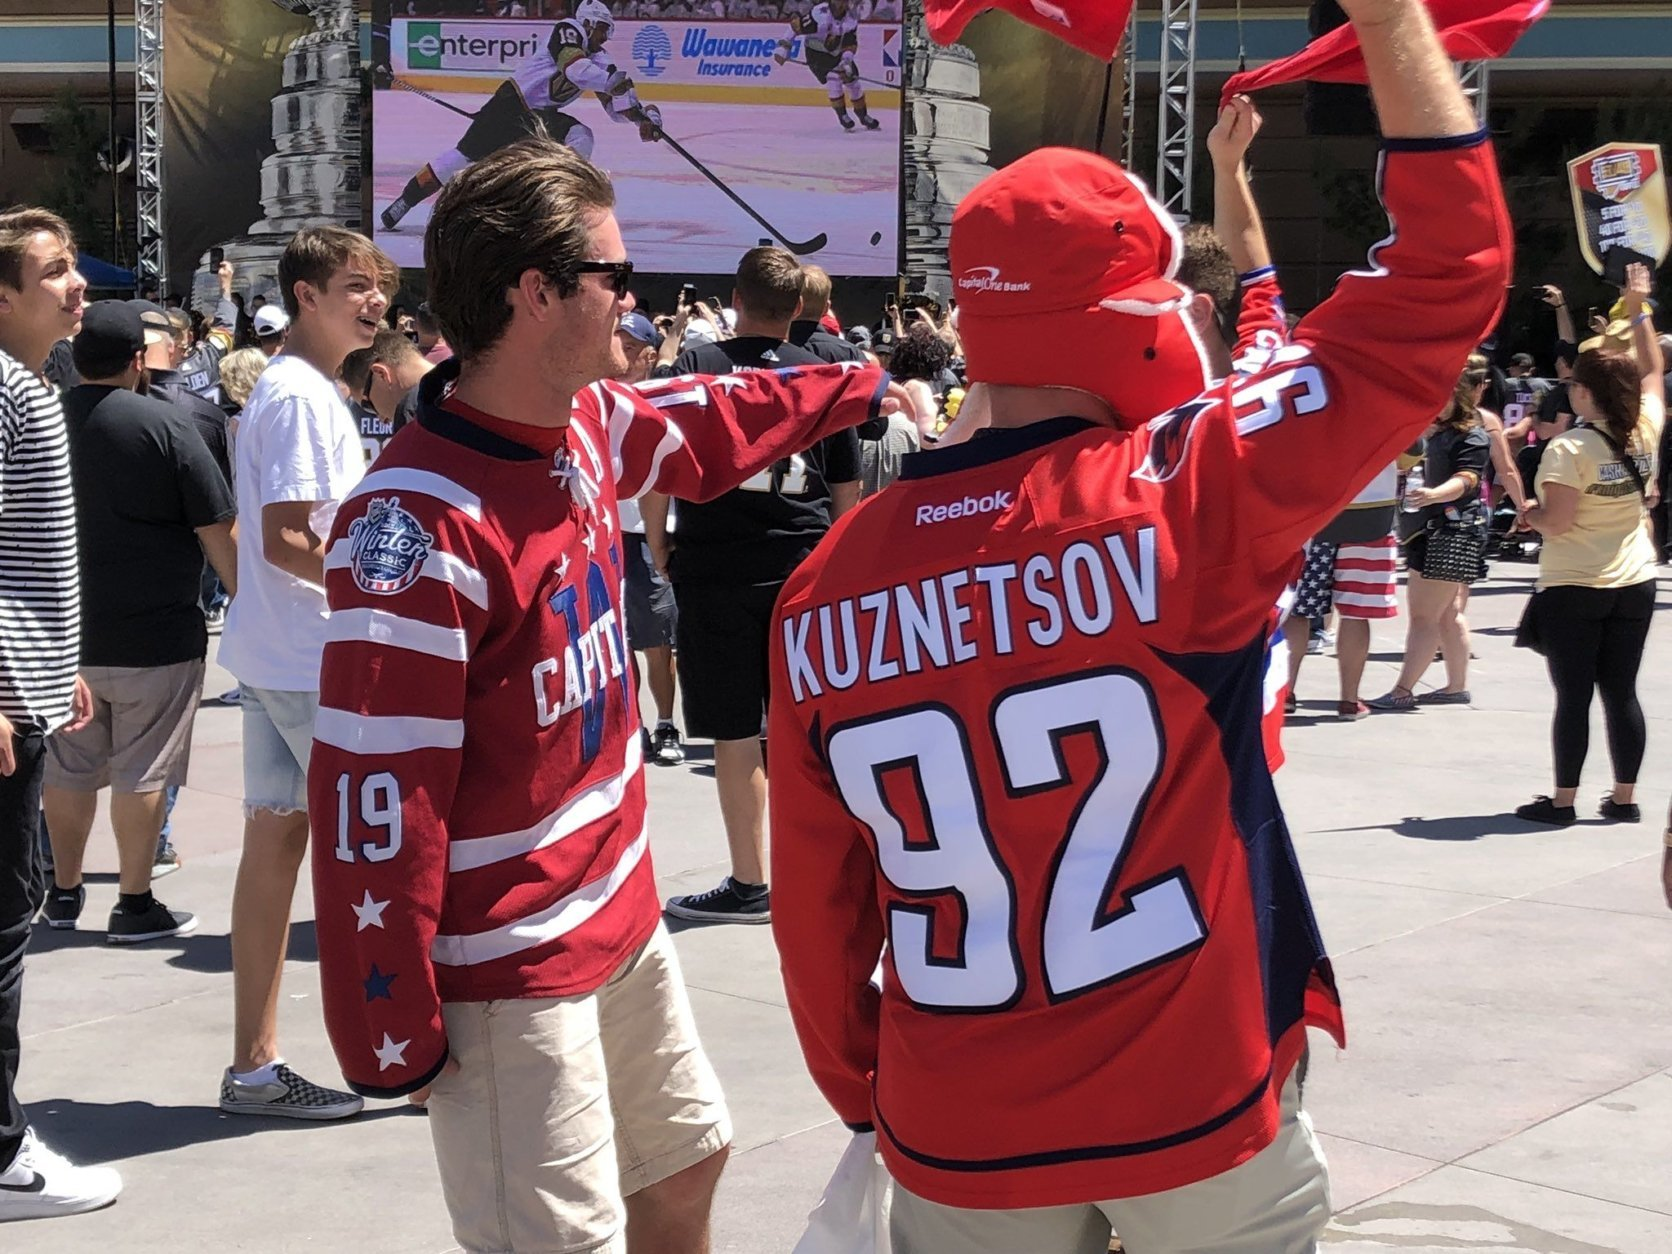 Some Capitals fans have made the trip to Las Vegas for Game 1 of the Stanley Cup Finals. (WTOP/Brennan Haselton)